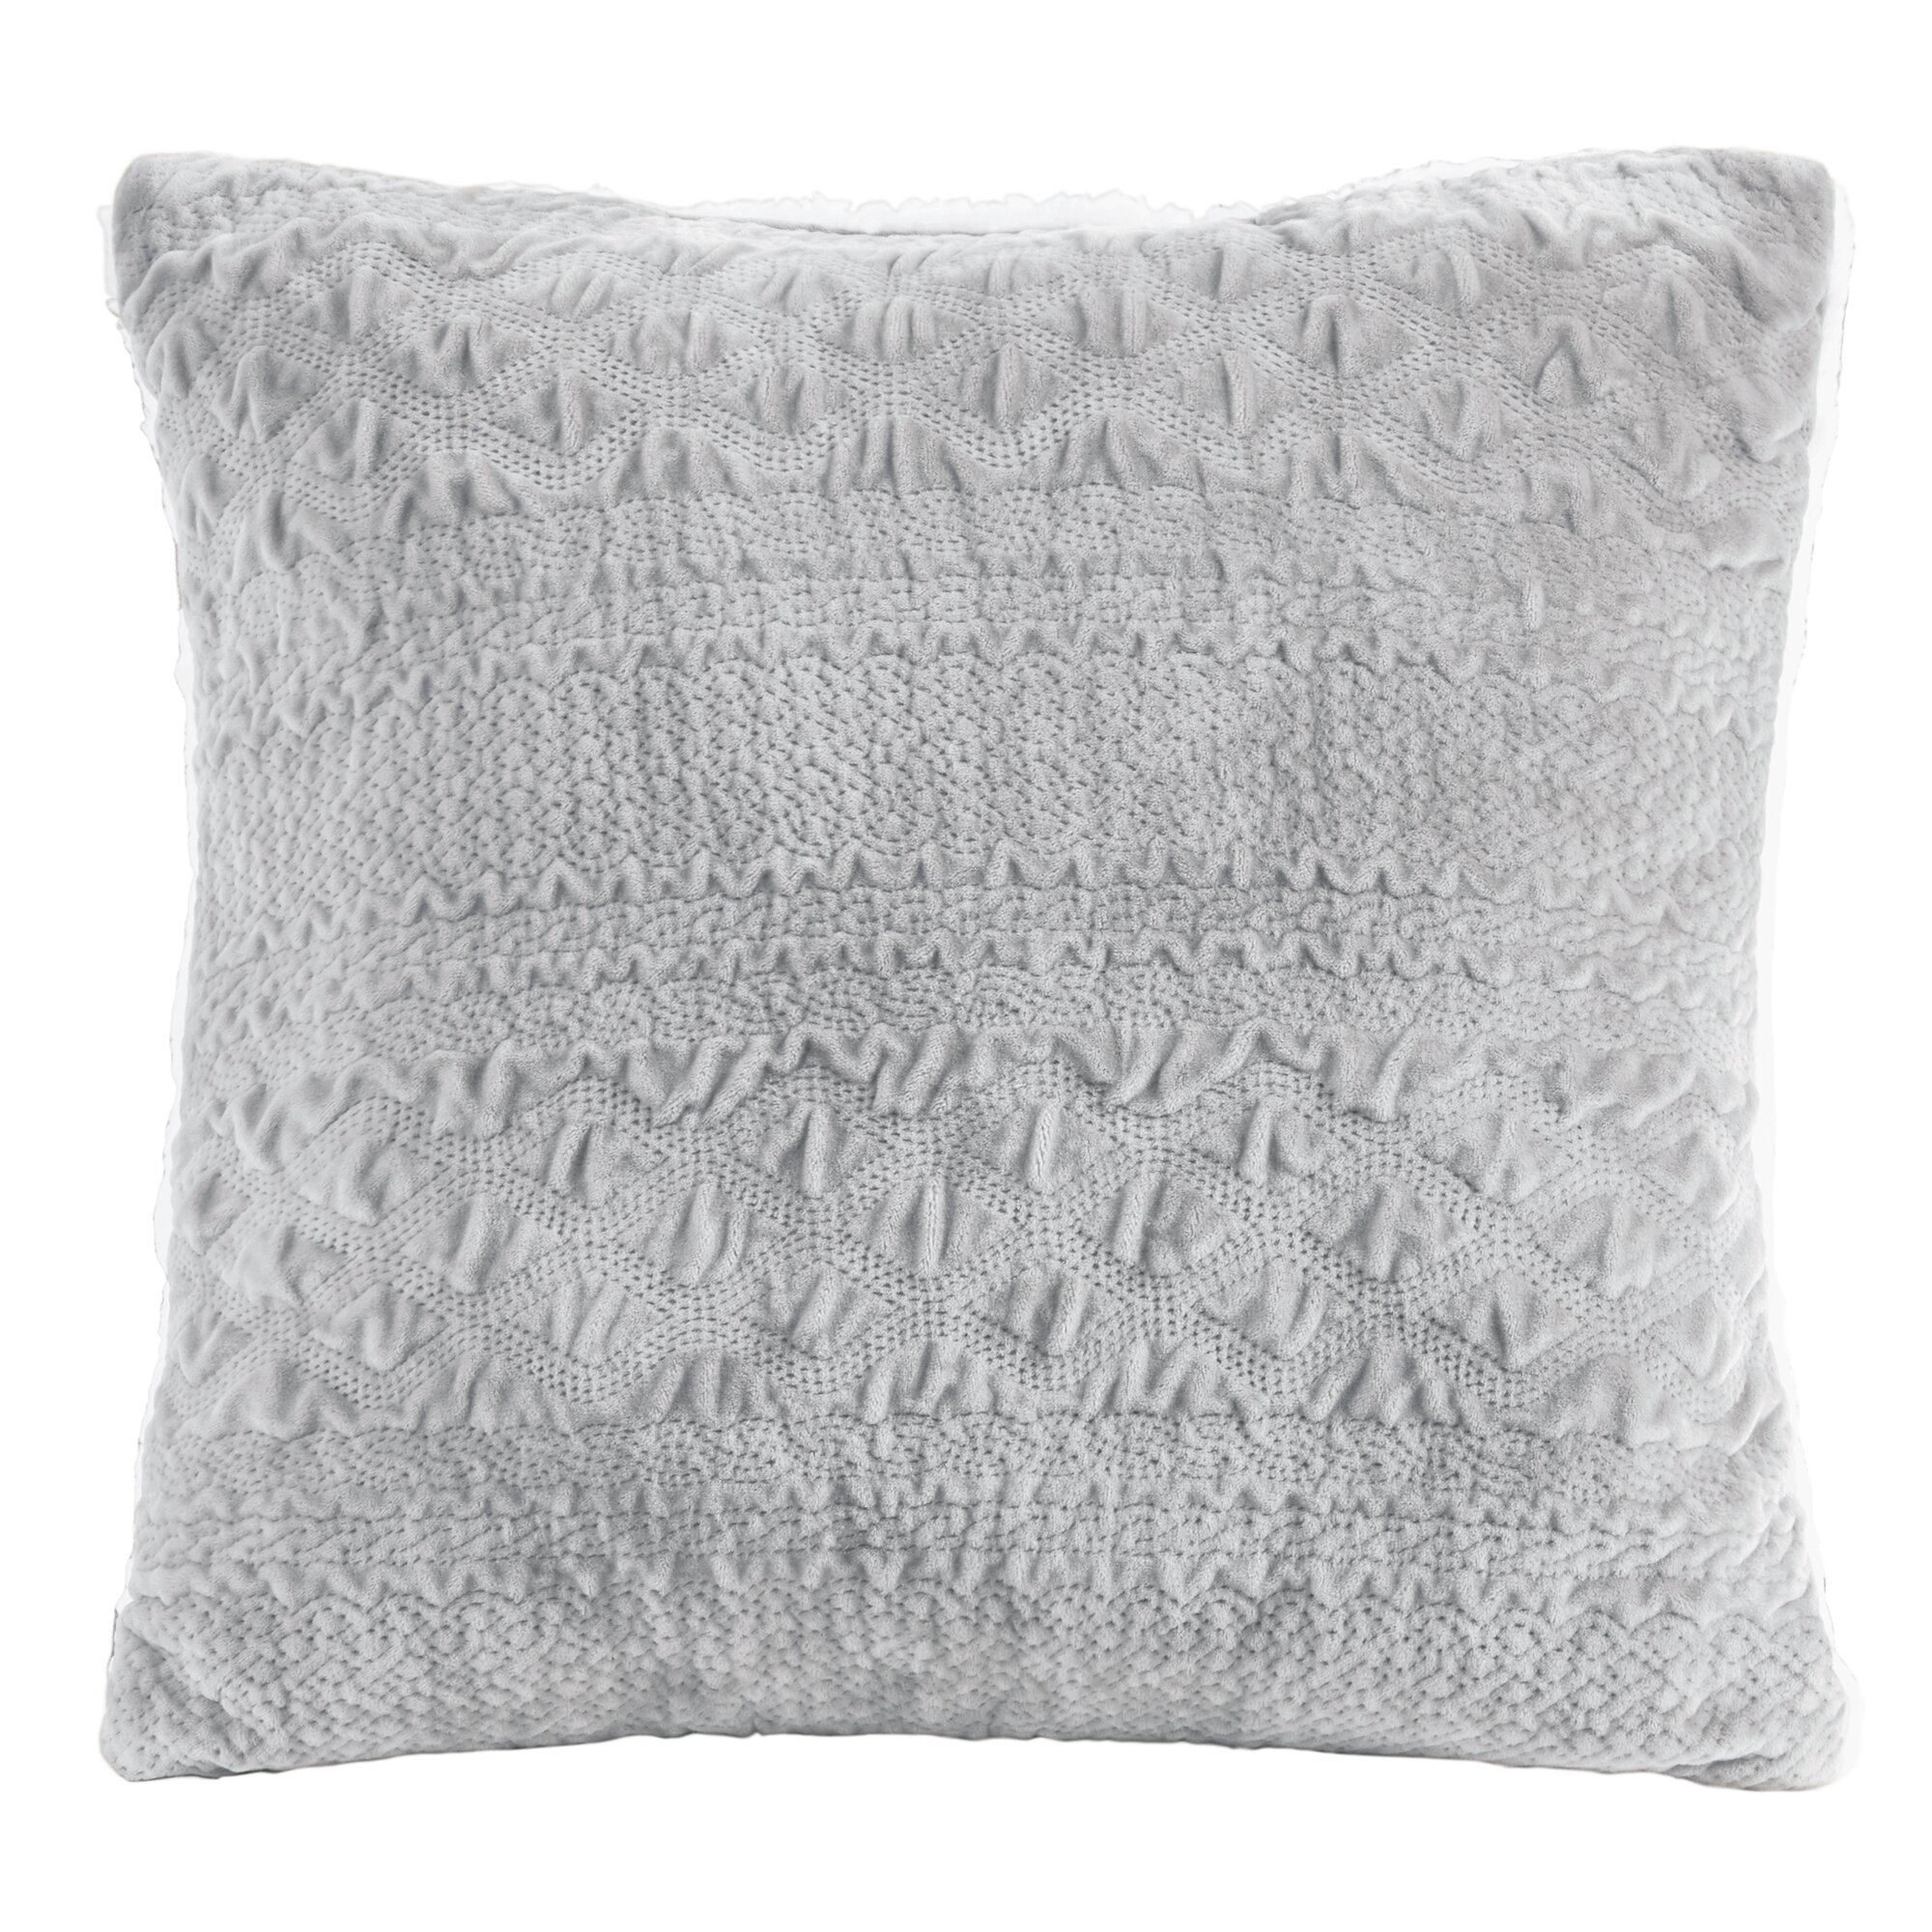 Throw Pillows Textured : Charlton Home Edmond Textured Plush Throw Pillow & Reviews Wayfair